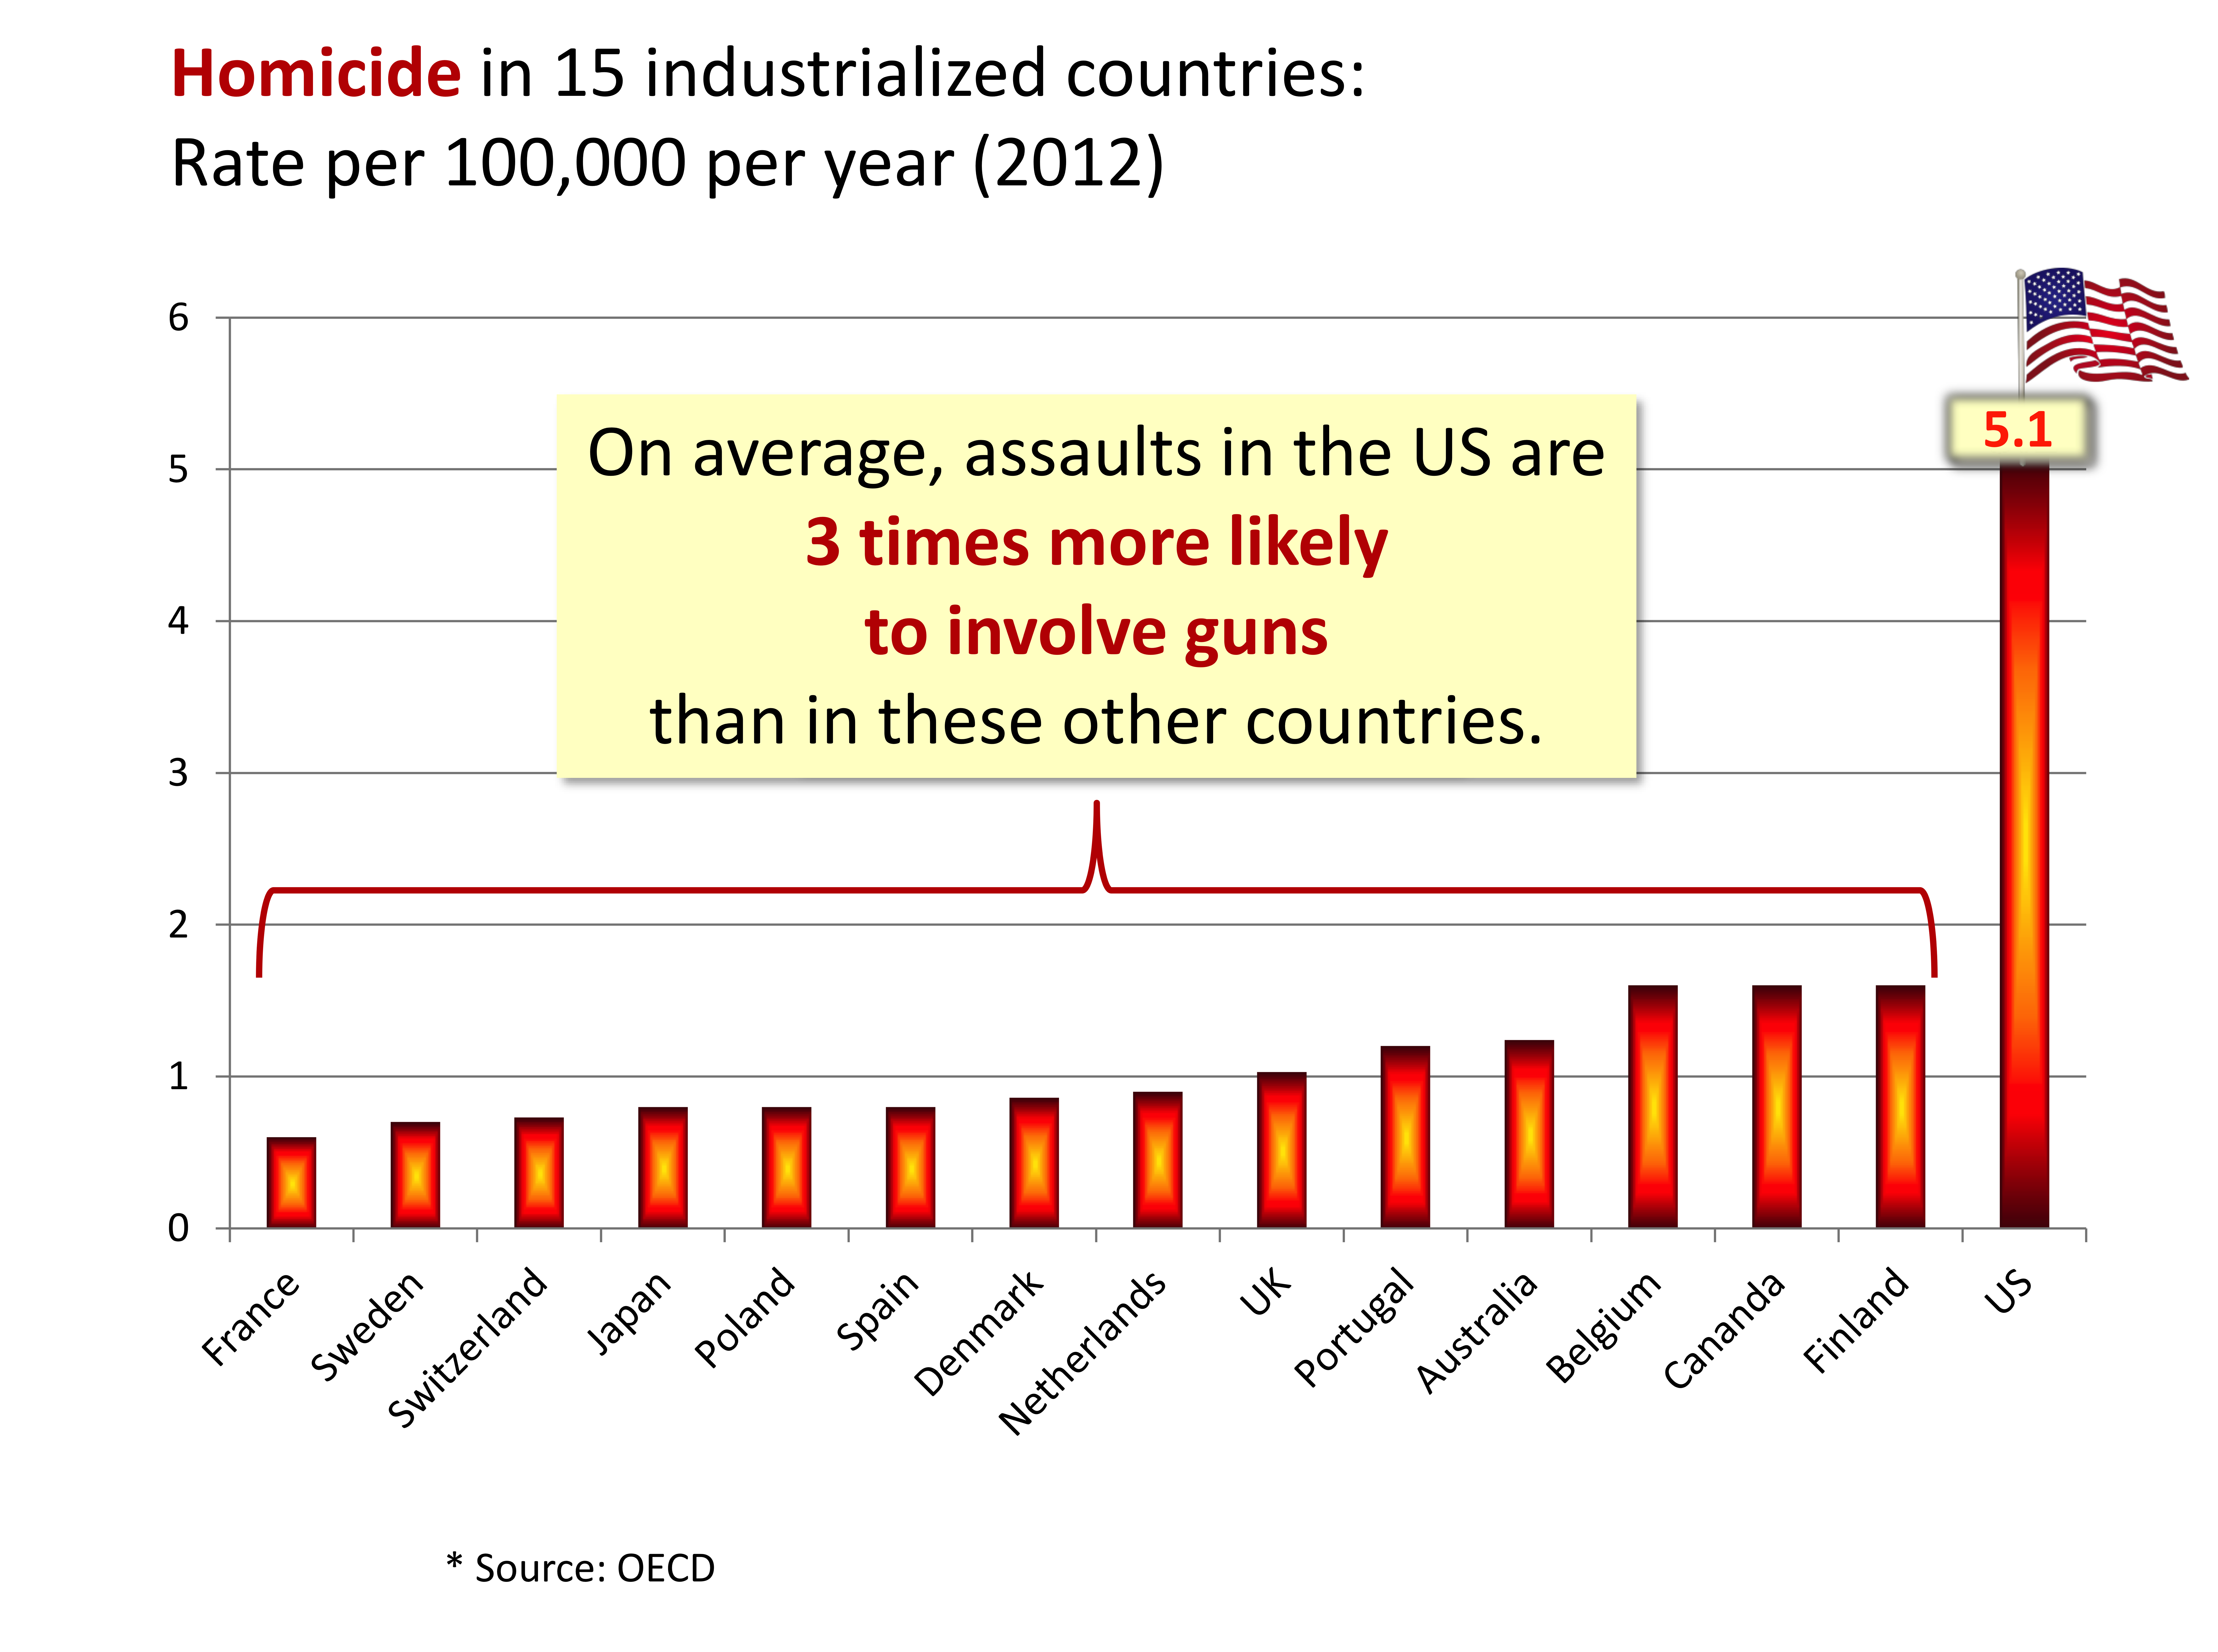 Homicide in the US versus other rich countries